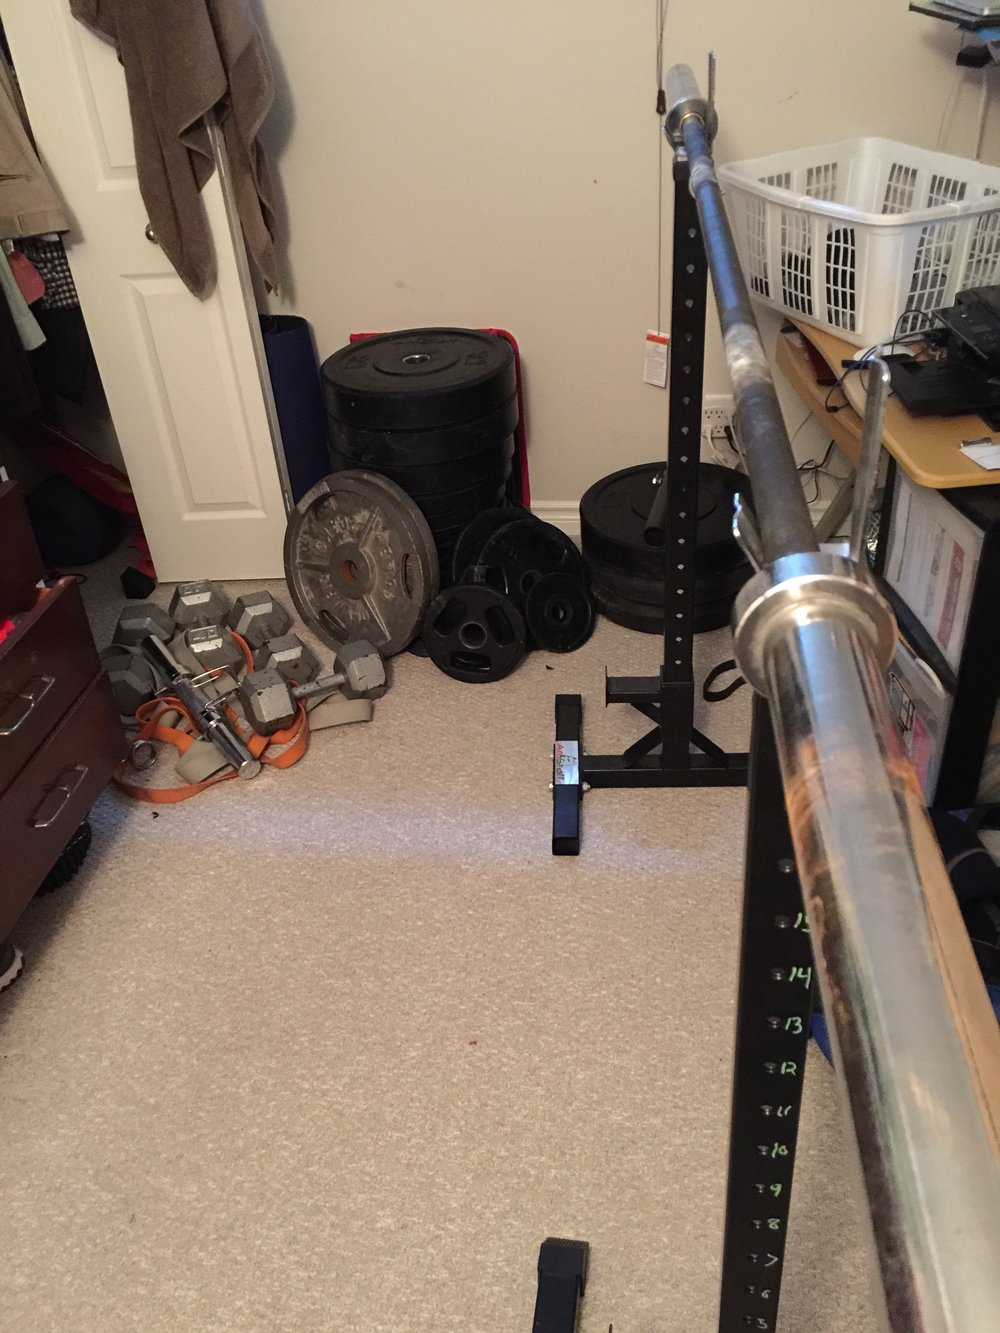 The minimalists garage gym ditch the crowded gym workout at home